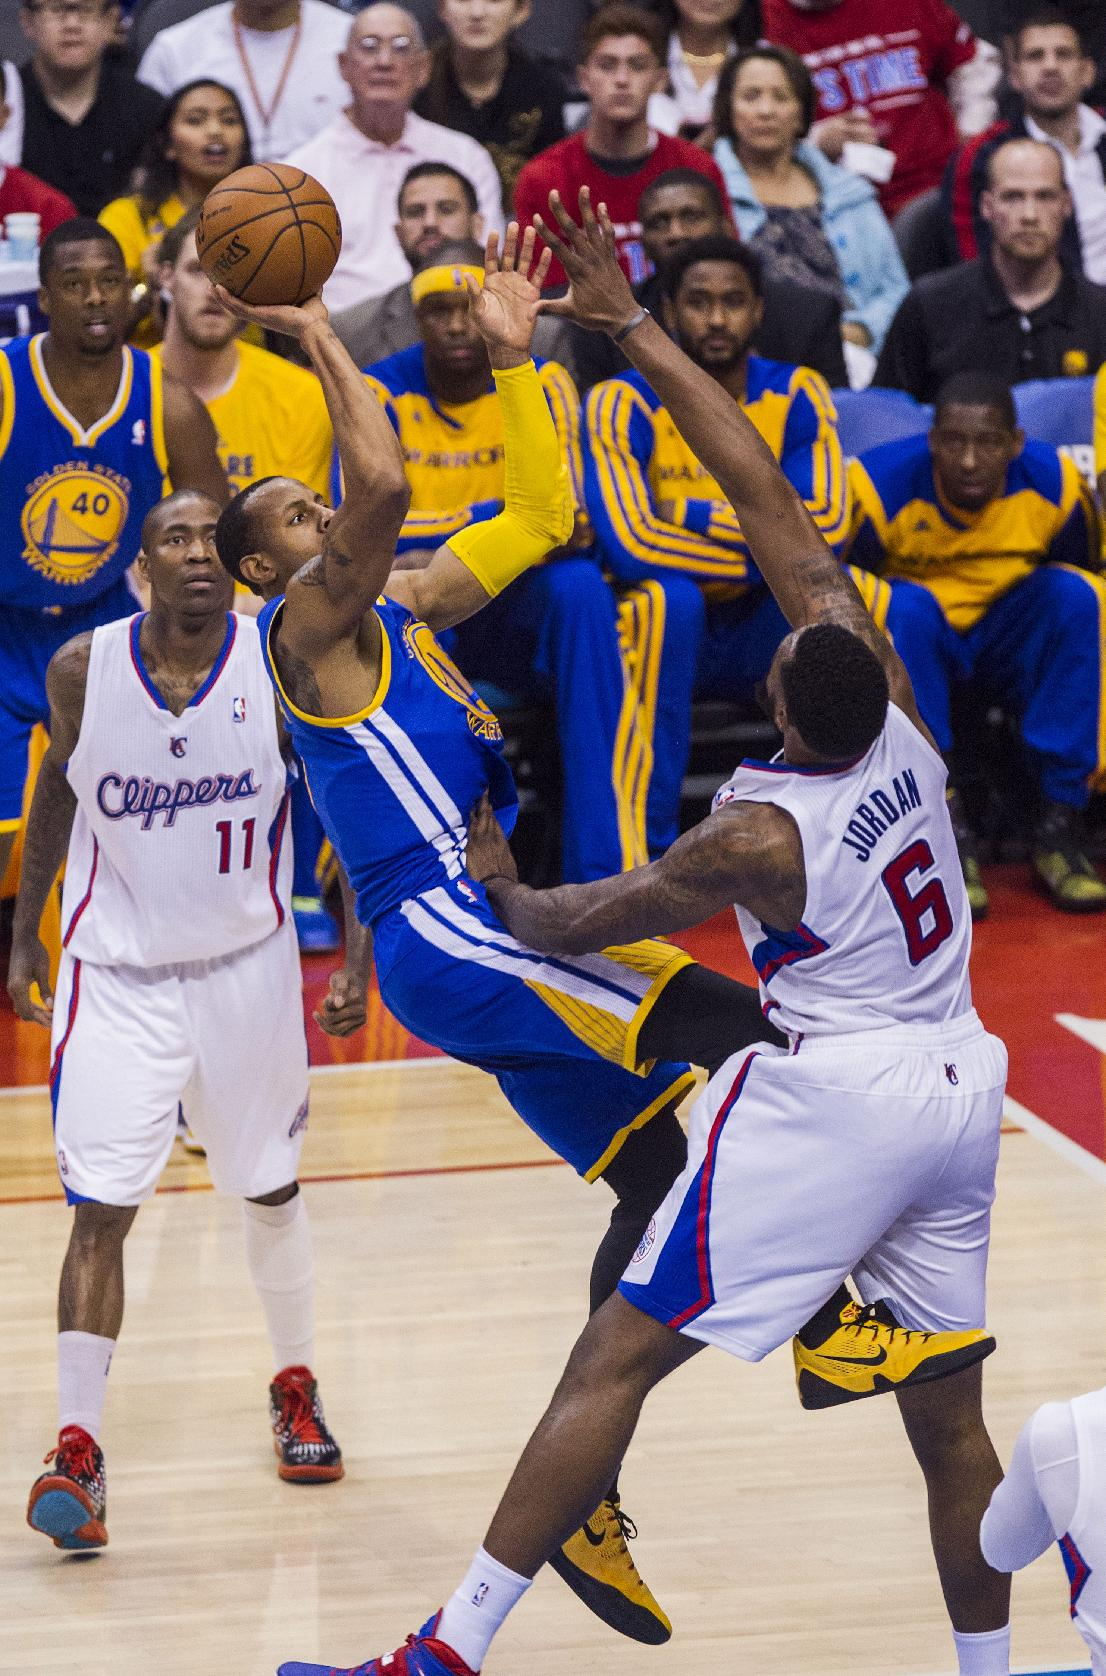 Golden State Warriors forward Andre Iguodala (9) shoots against Los Angeles Clippers center DeAndre Jordan (6) during the first half of Game 7 of a first-round NBA basketball playoff series, Saturday, May 3, 2014, in Los Angeles